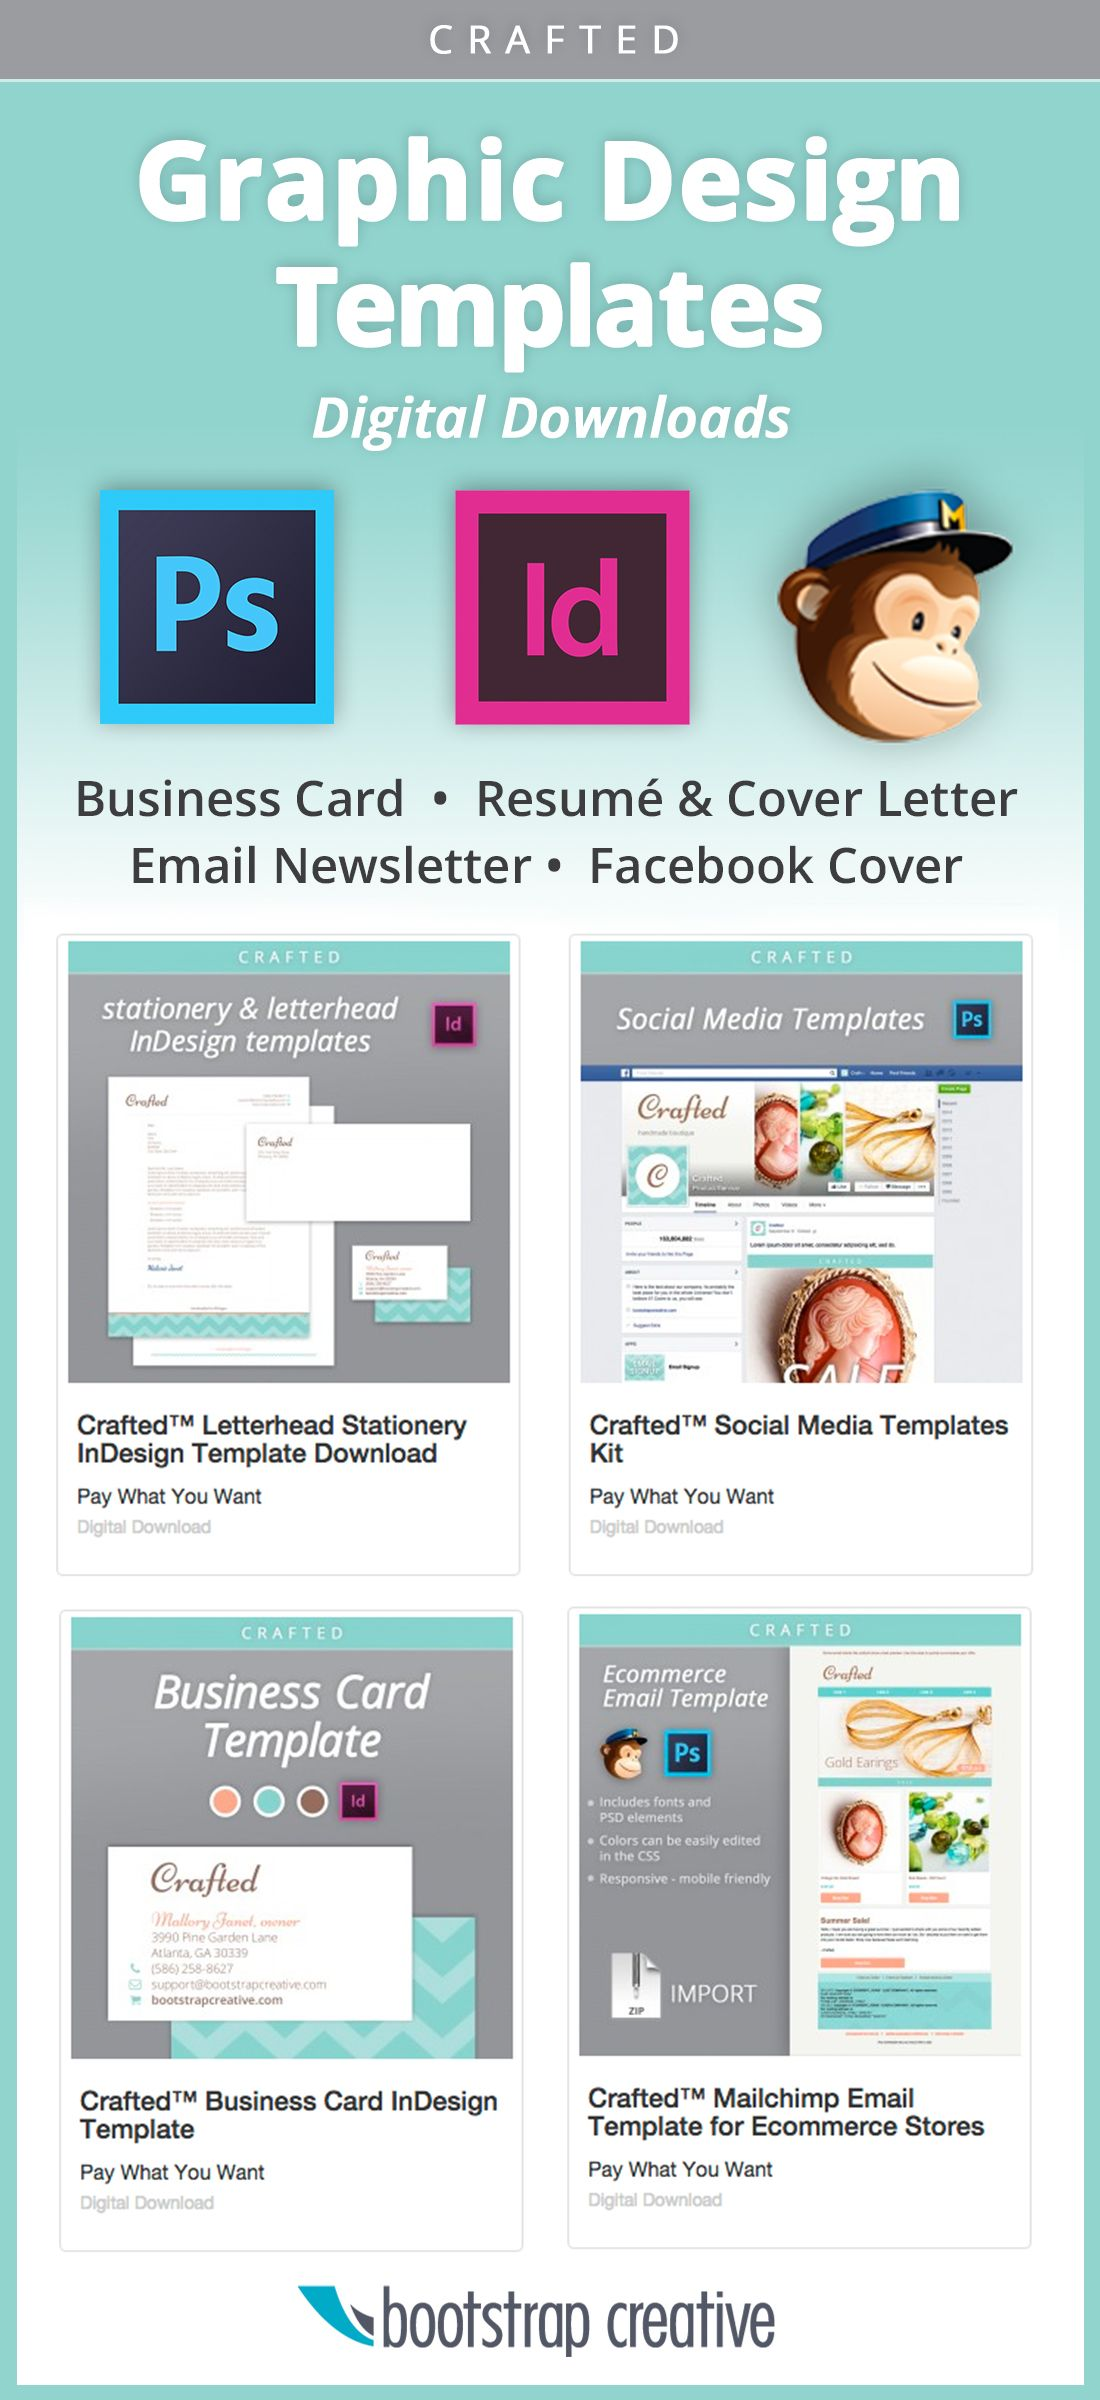 Email newsletter template business card template social media email newsletter template business card template social media templates business letterhead and cheaphphosting Choice Image